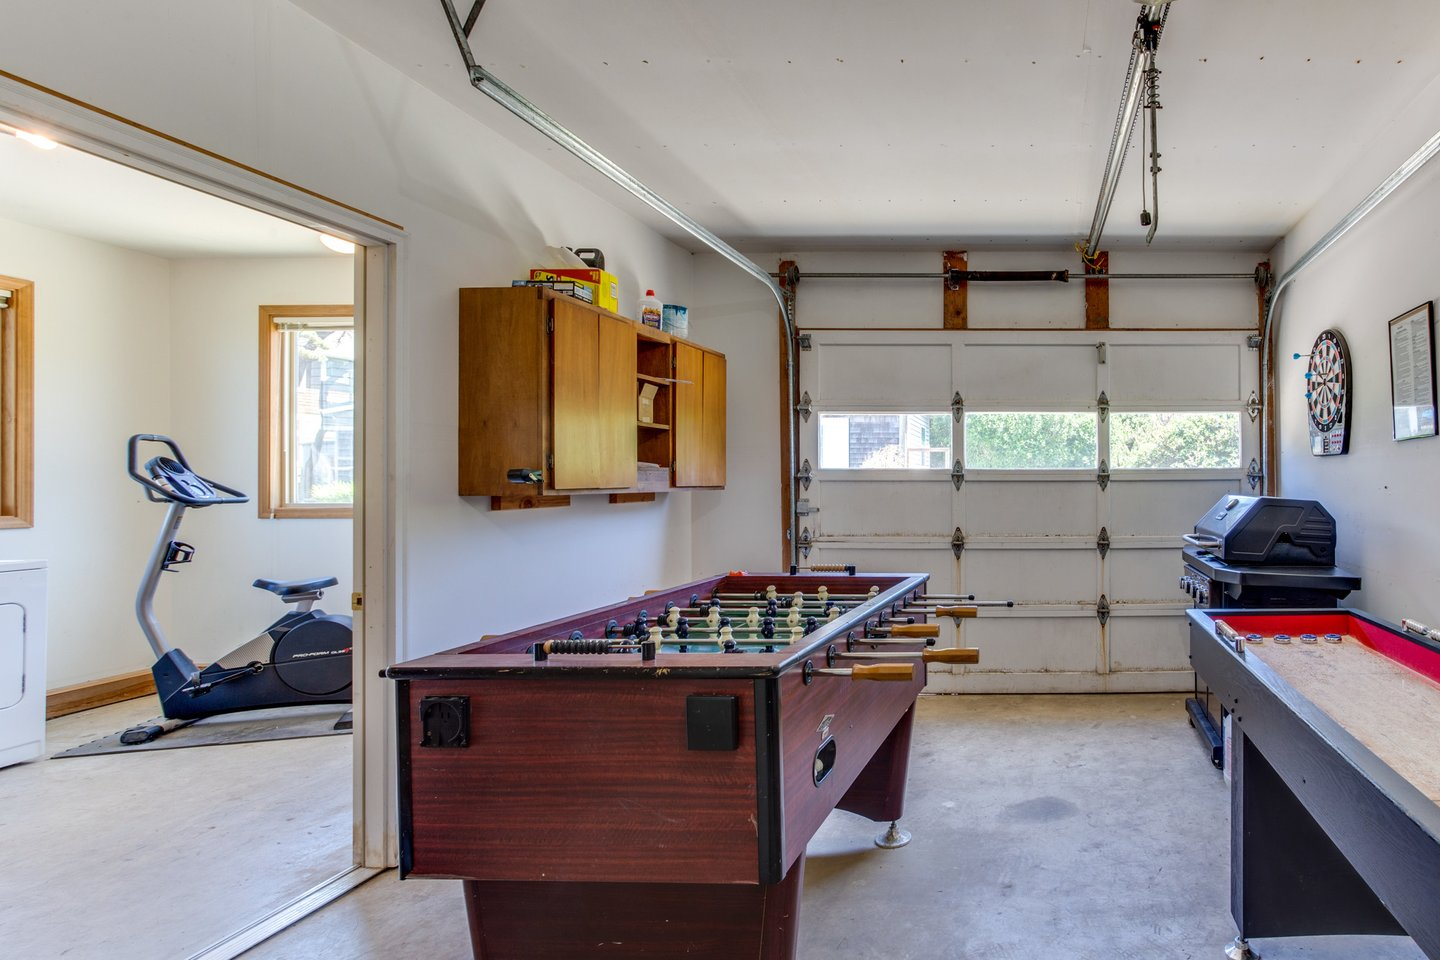 Get a workout in, or work on your Foosball skills in the garage.